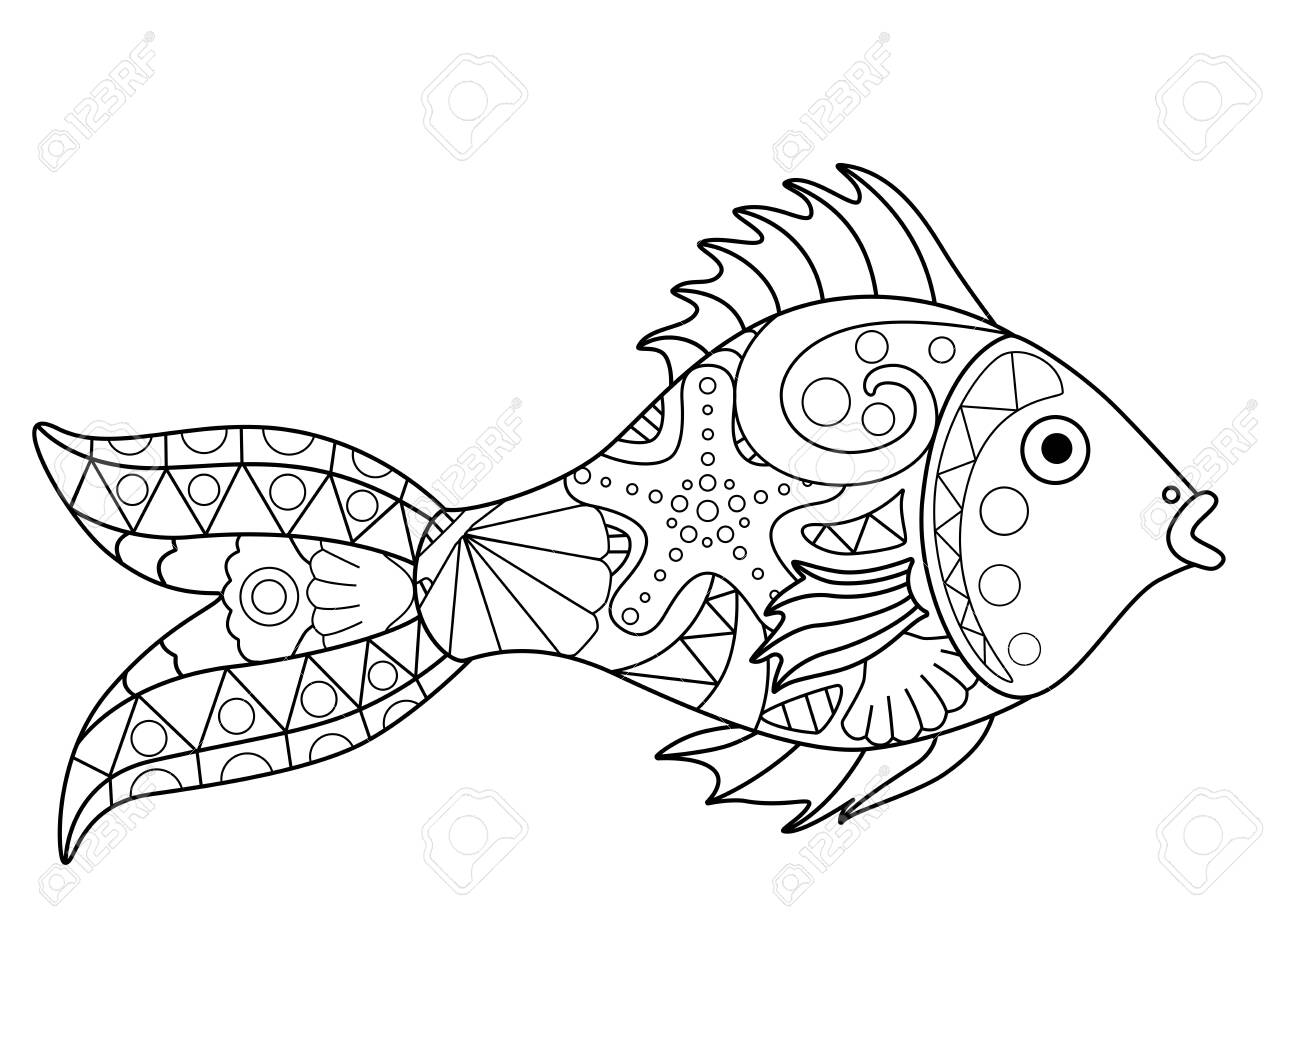 Small river or aquarium fish - vector antistress coloring book. Fish - a linear vector element for a coloring book about the sea. Outline Hand drawing. - 146799143